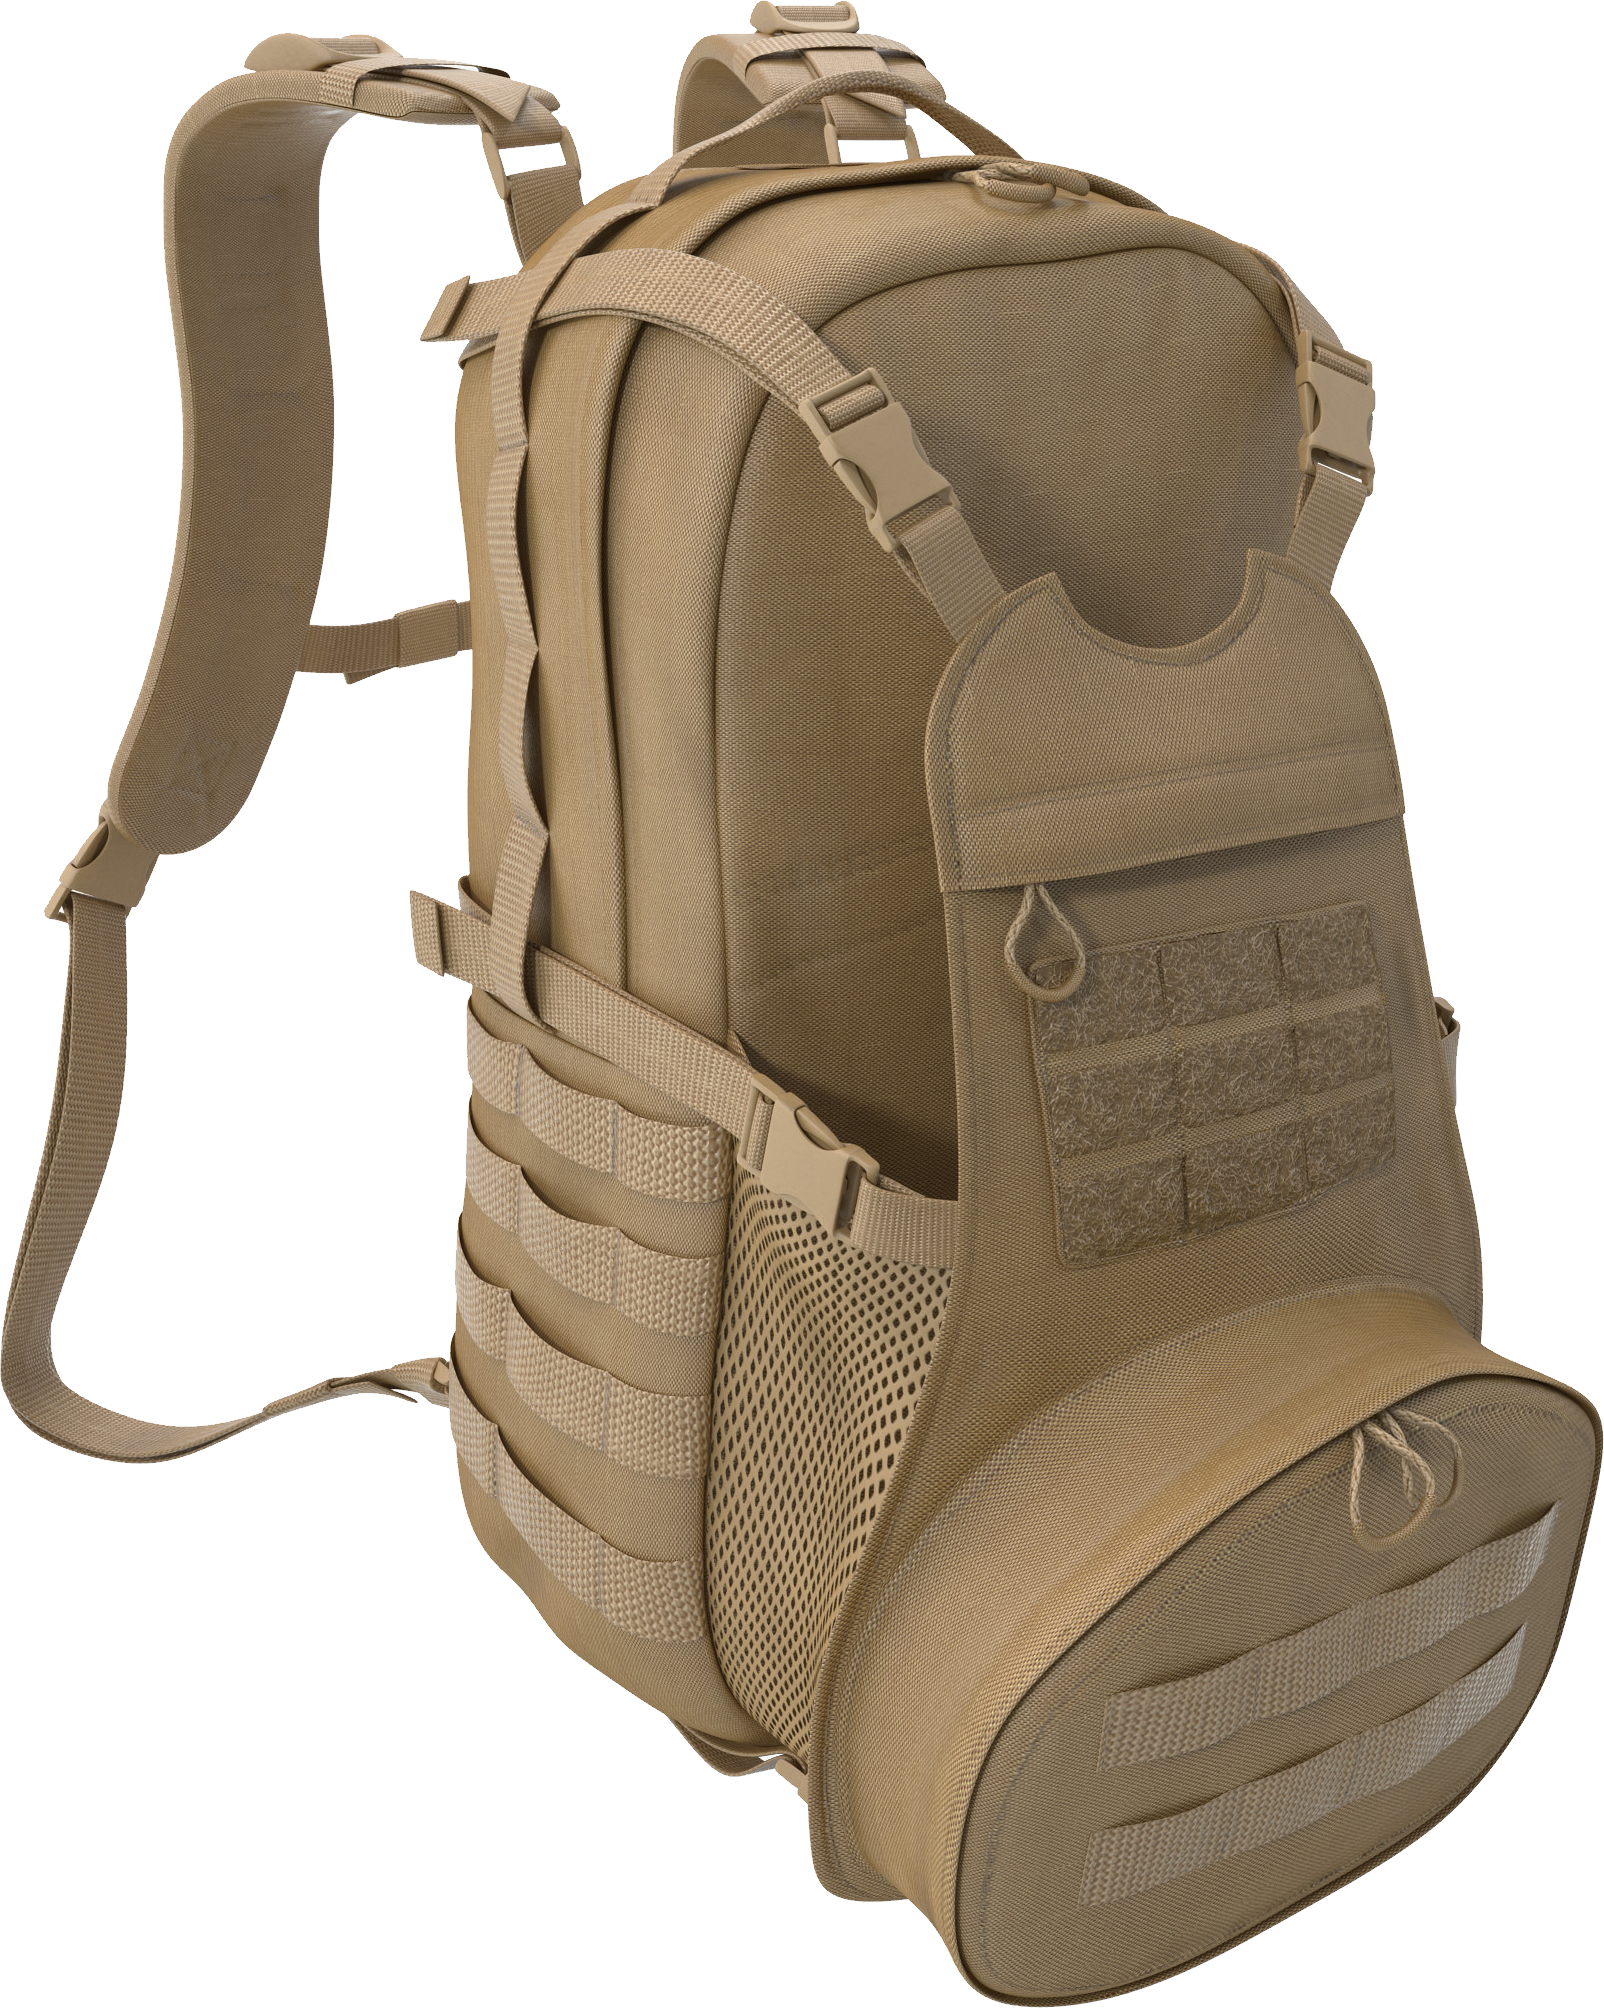 Military Bag With Extra Pockets PNG Image